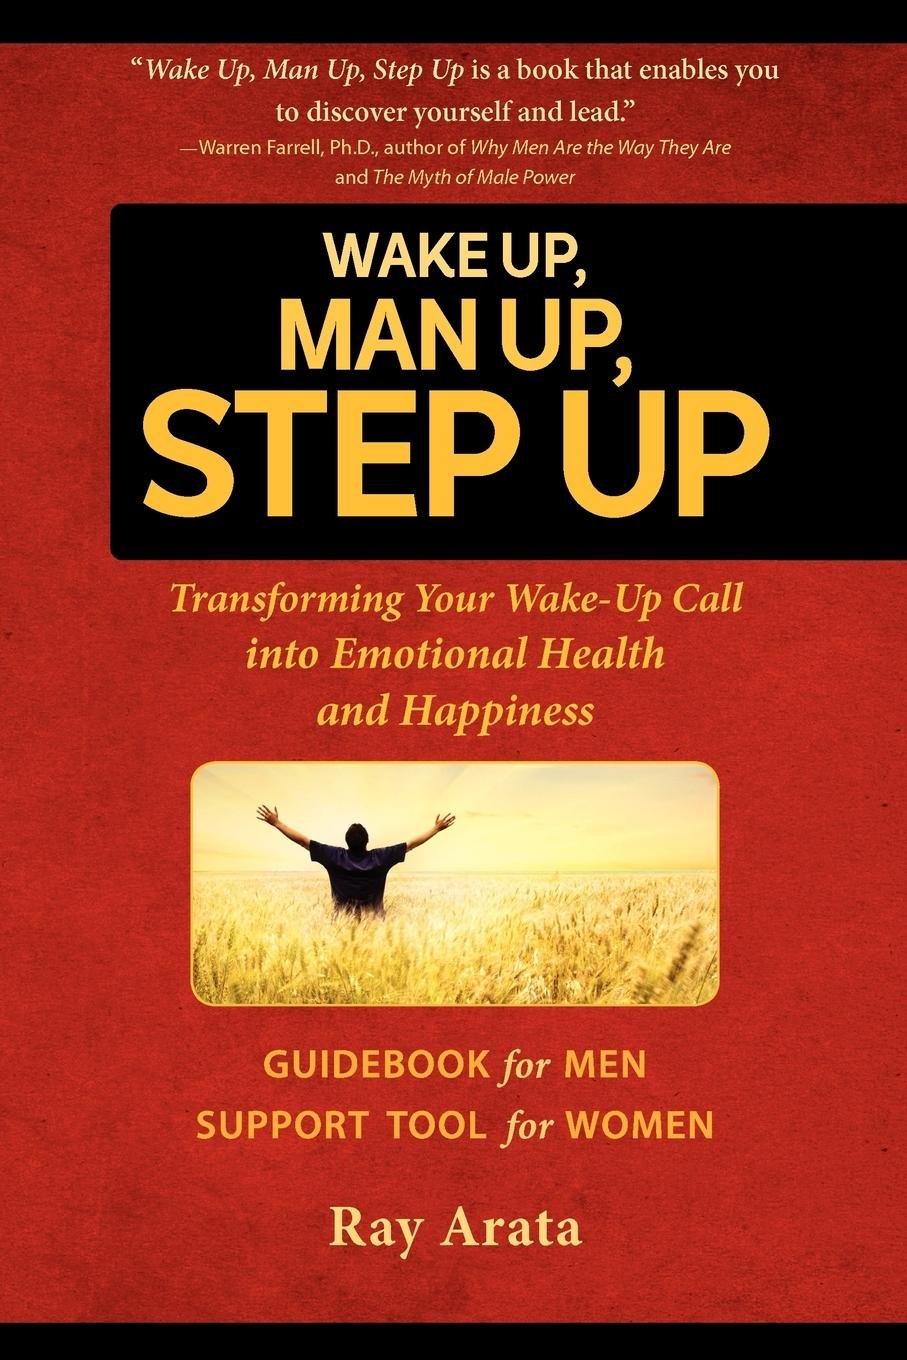 Wake Up, Man Up, Step Up: Transforming Your Wake-Up Call into Emotional  Health and Happiness: Ray Arata: 9780983943266: Amazon.com: Books